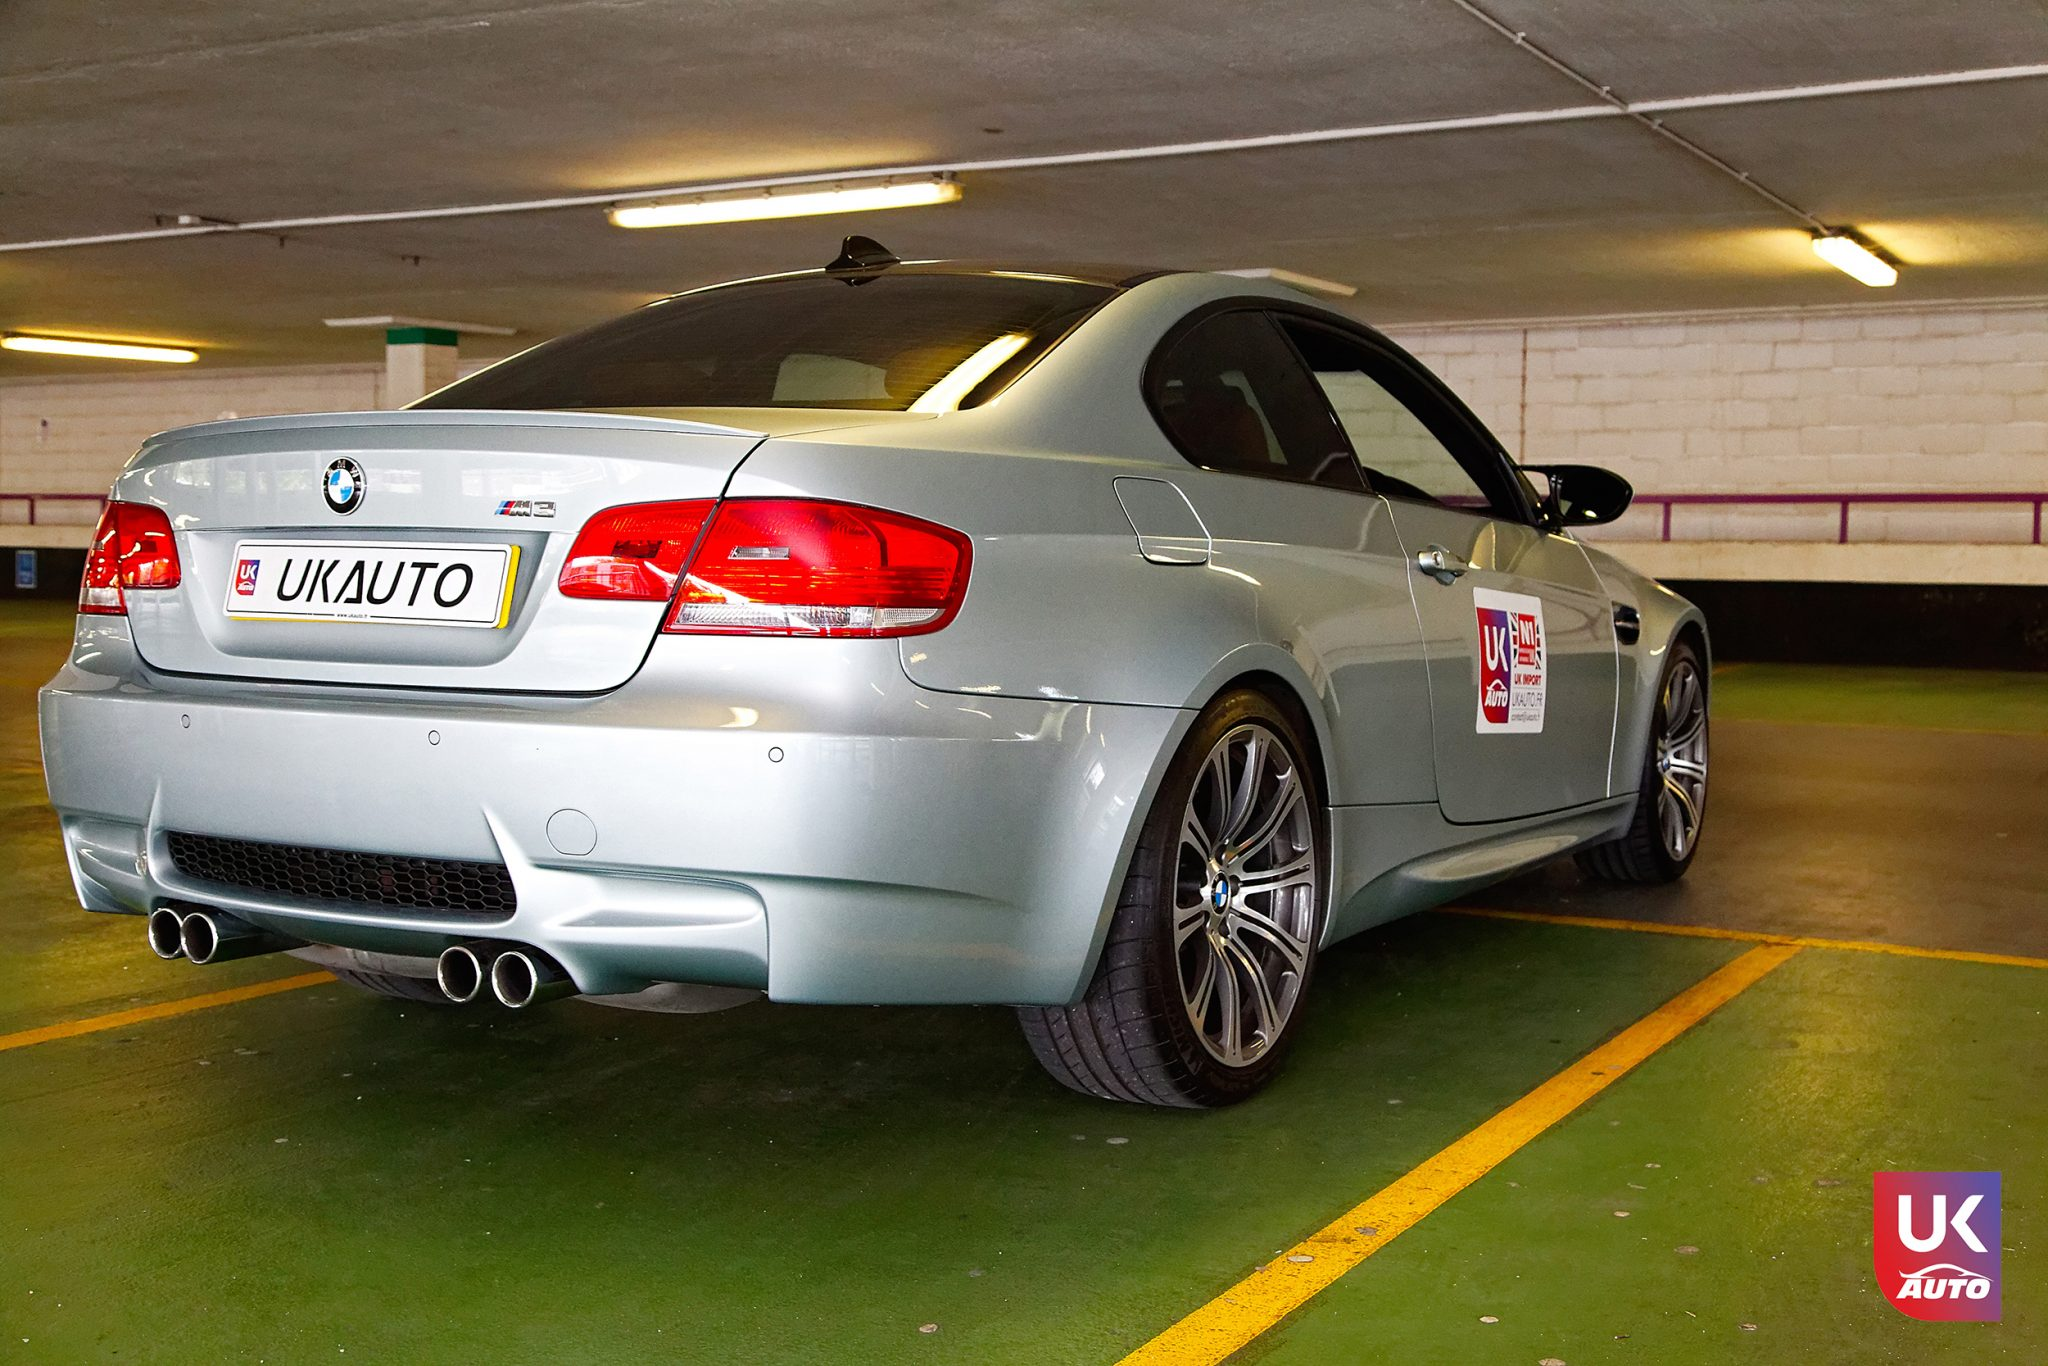 ukauto uk import bmw angleterre bmw m3 rhd e92 v8 mandataire uk angleterre voiture1 - Felicitation a Philippe BMW M3 E92 RHD POUR IMPORTER UNE VOITURE EN ANGLETERRE